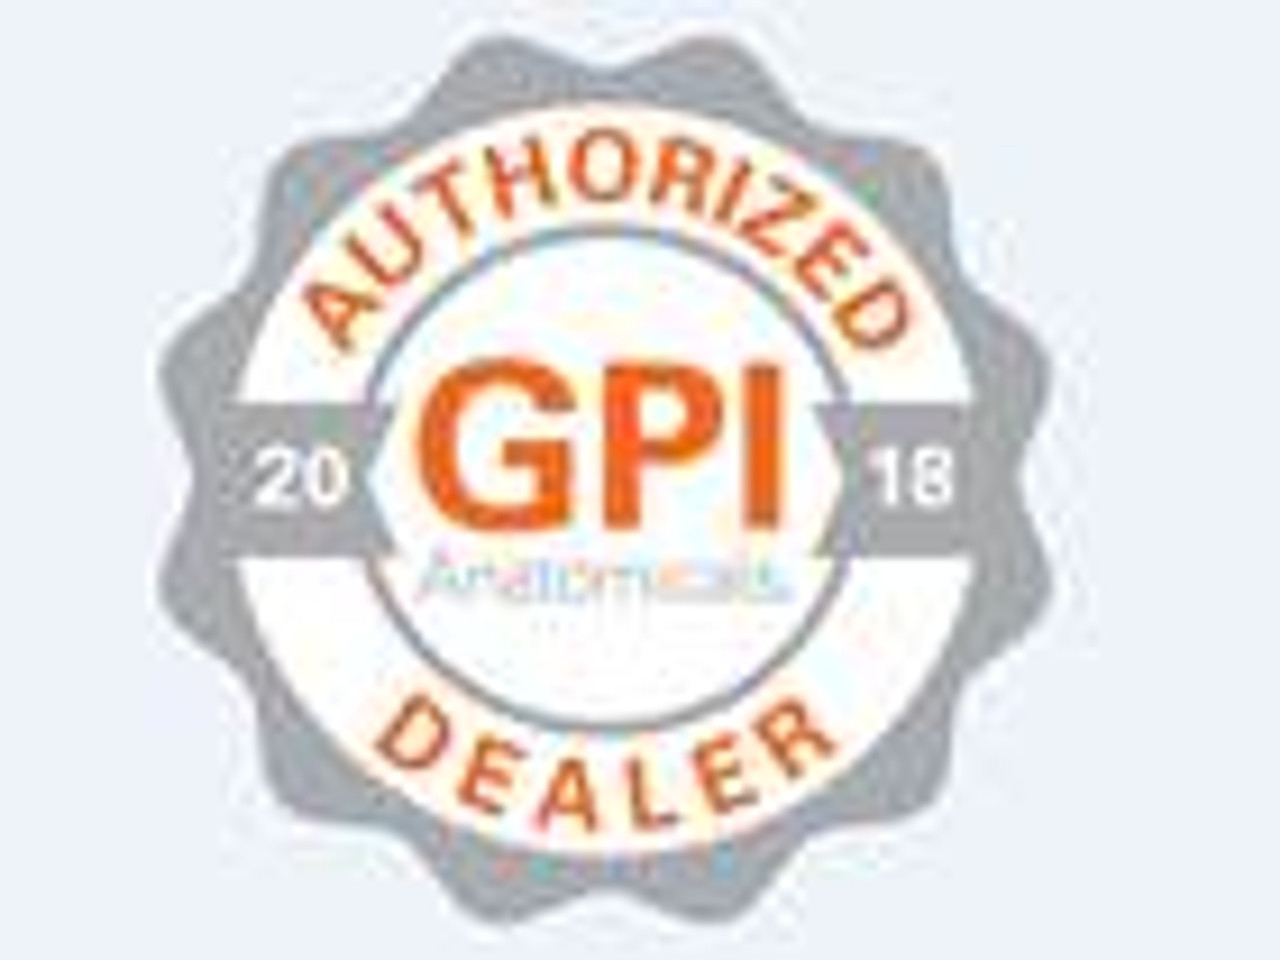 Authorized GPI dealer,